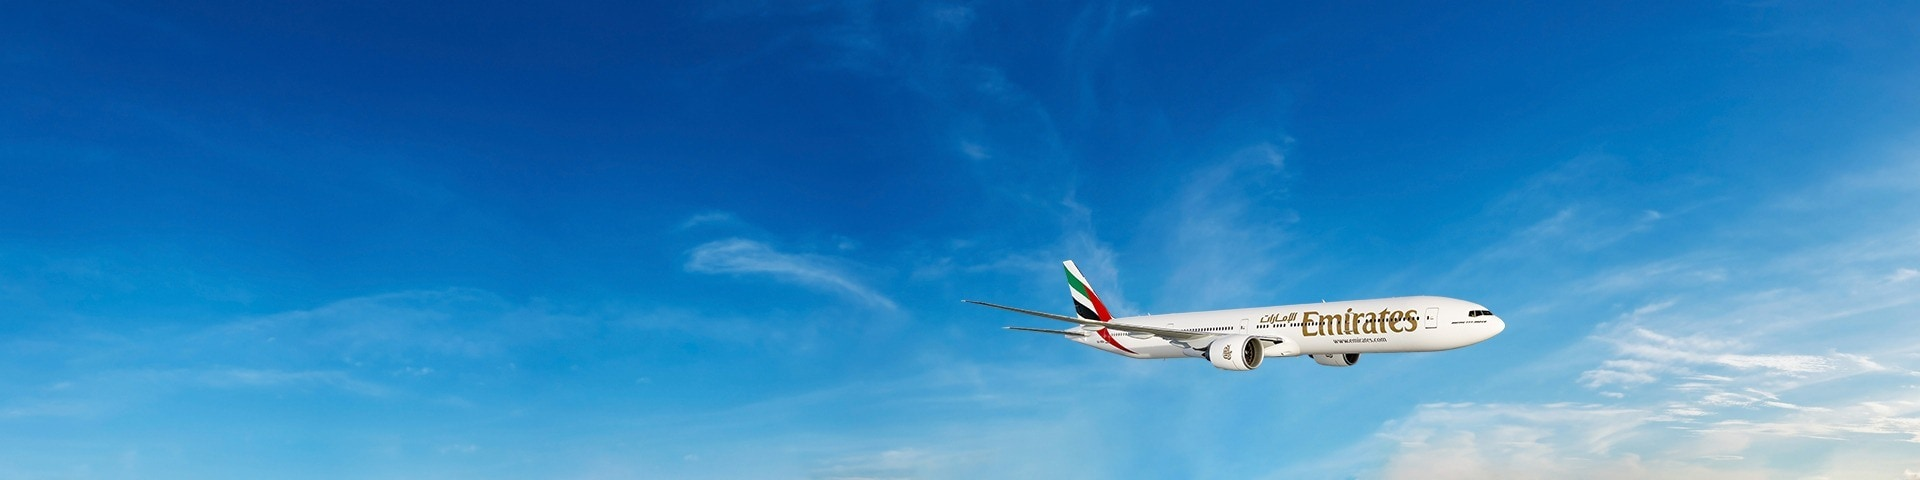 Boeing 777 flying through the clear blue sky